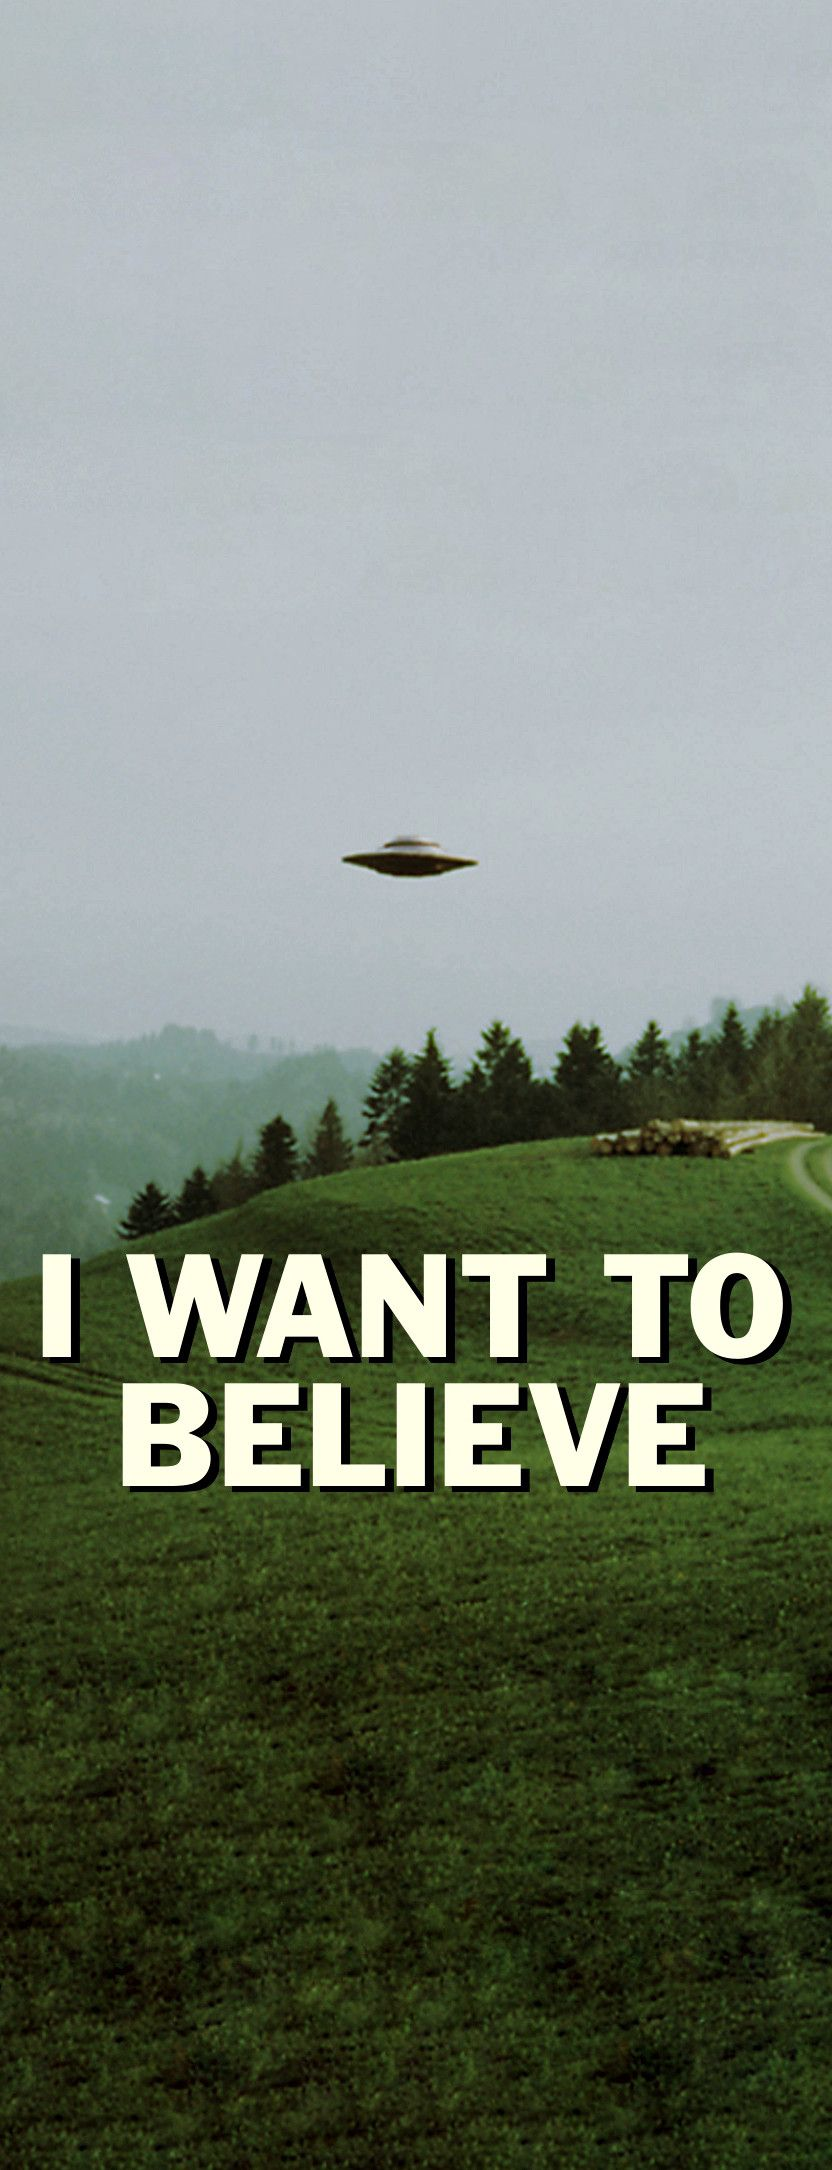 XFiles I Want To Believe X files, Phone wallpaper, 4k